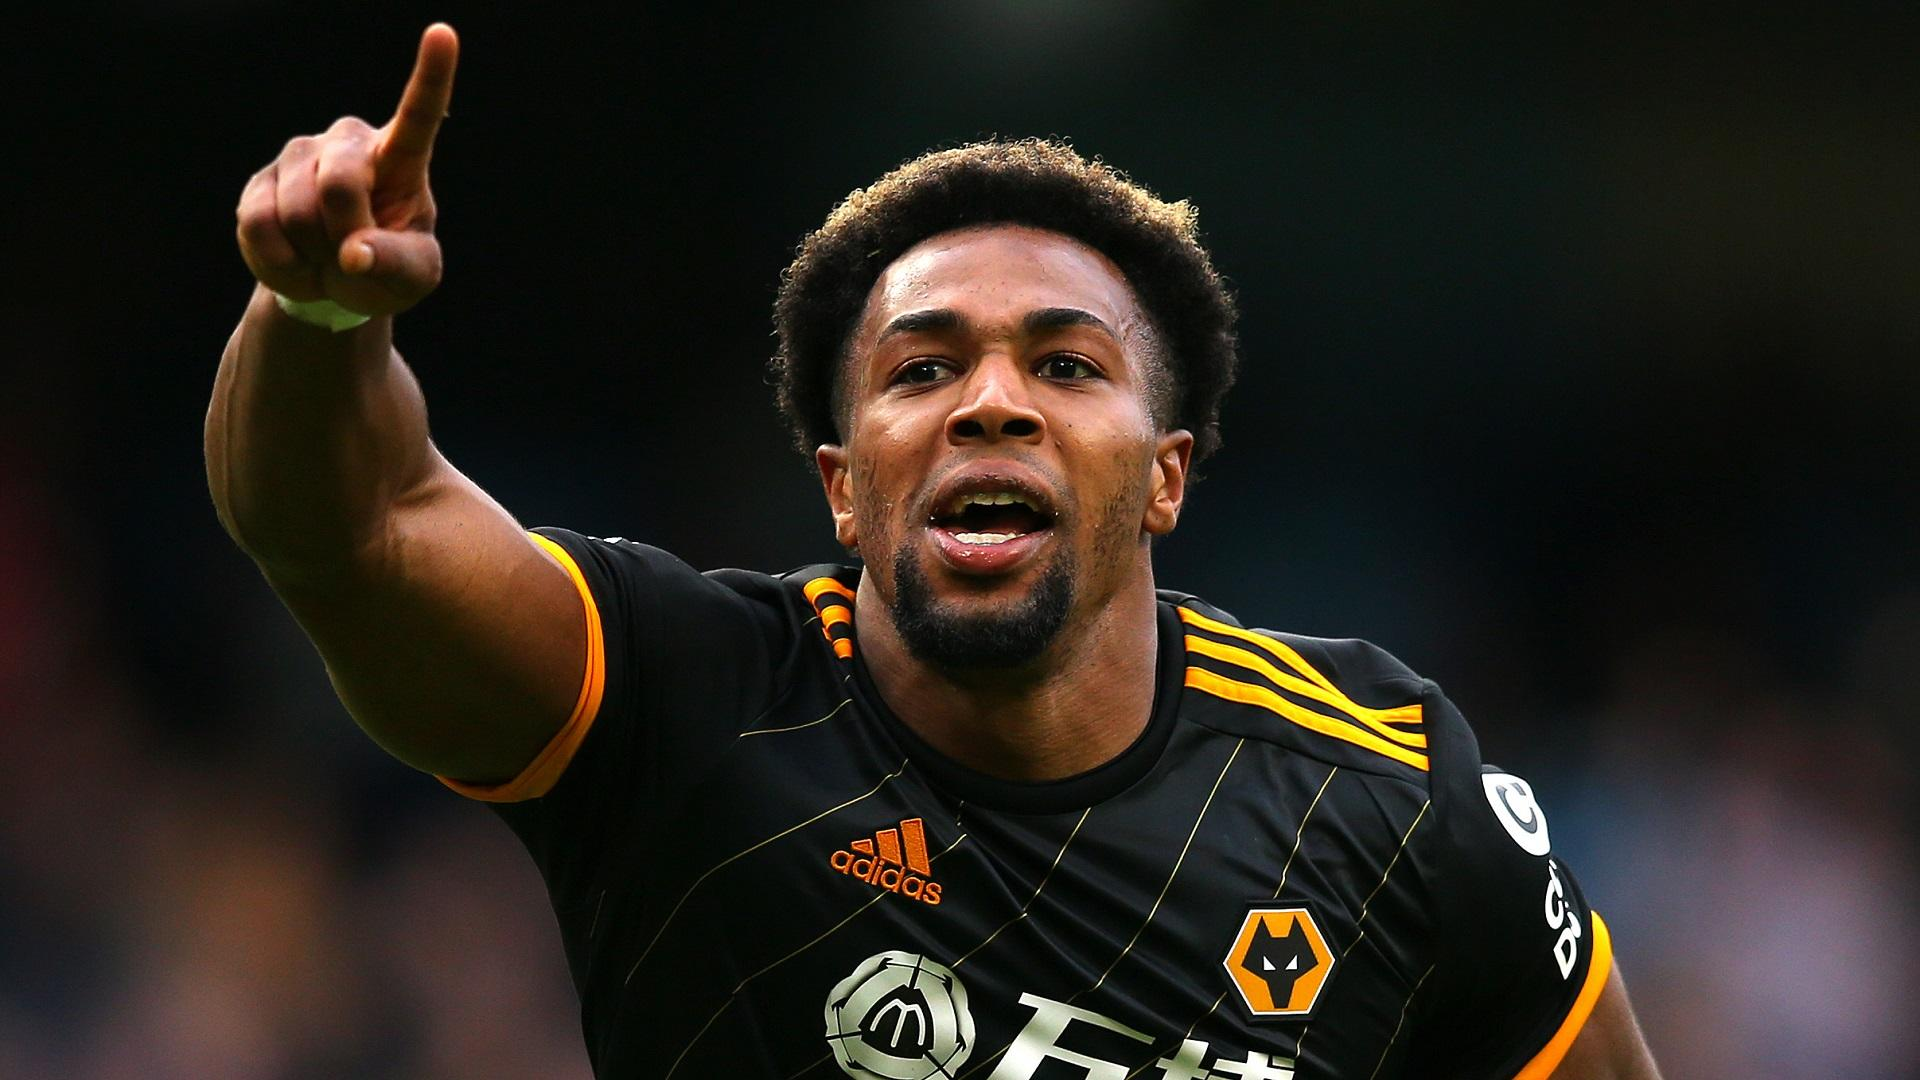 Traore Could Easily Play For Manchester City Or Liverpool Lescott Talks Up Talents Of Wolves Star